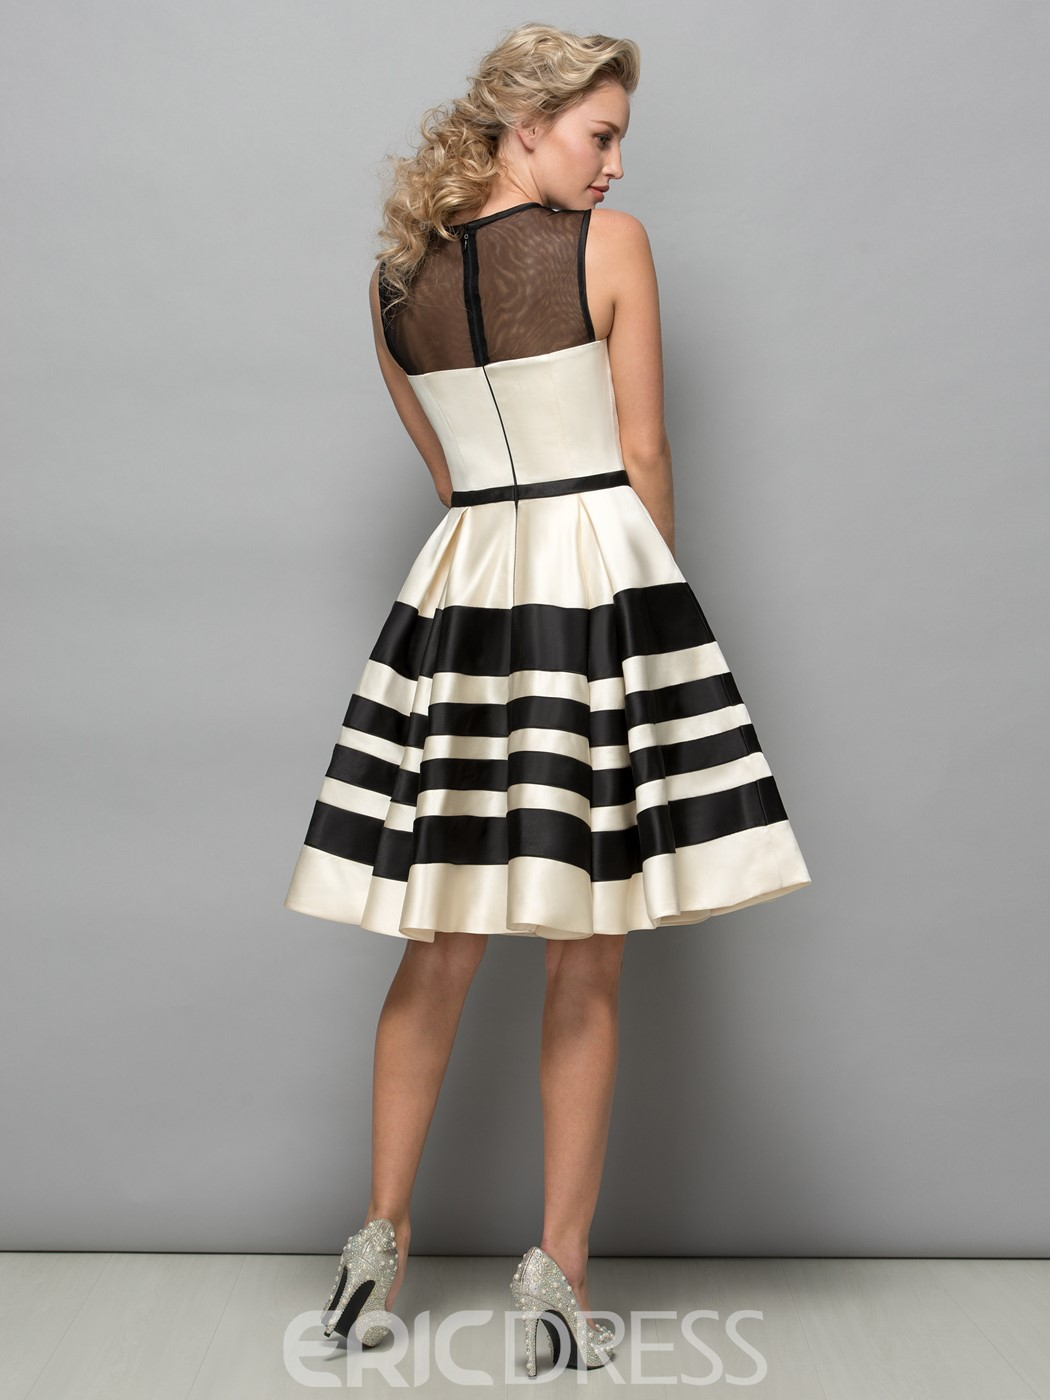 Ericdress Sheer Neck Bowknot Knee-Length Cocktail Dress